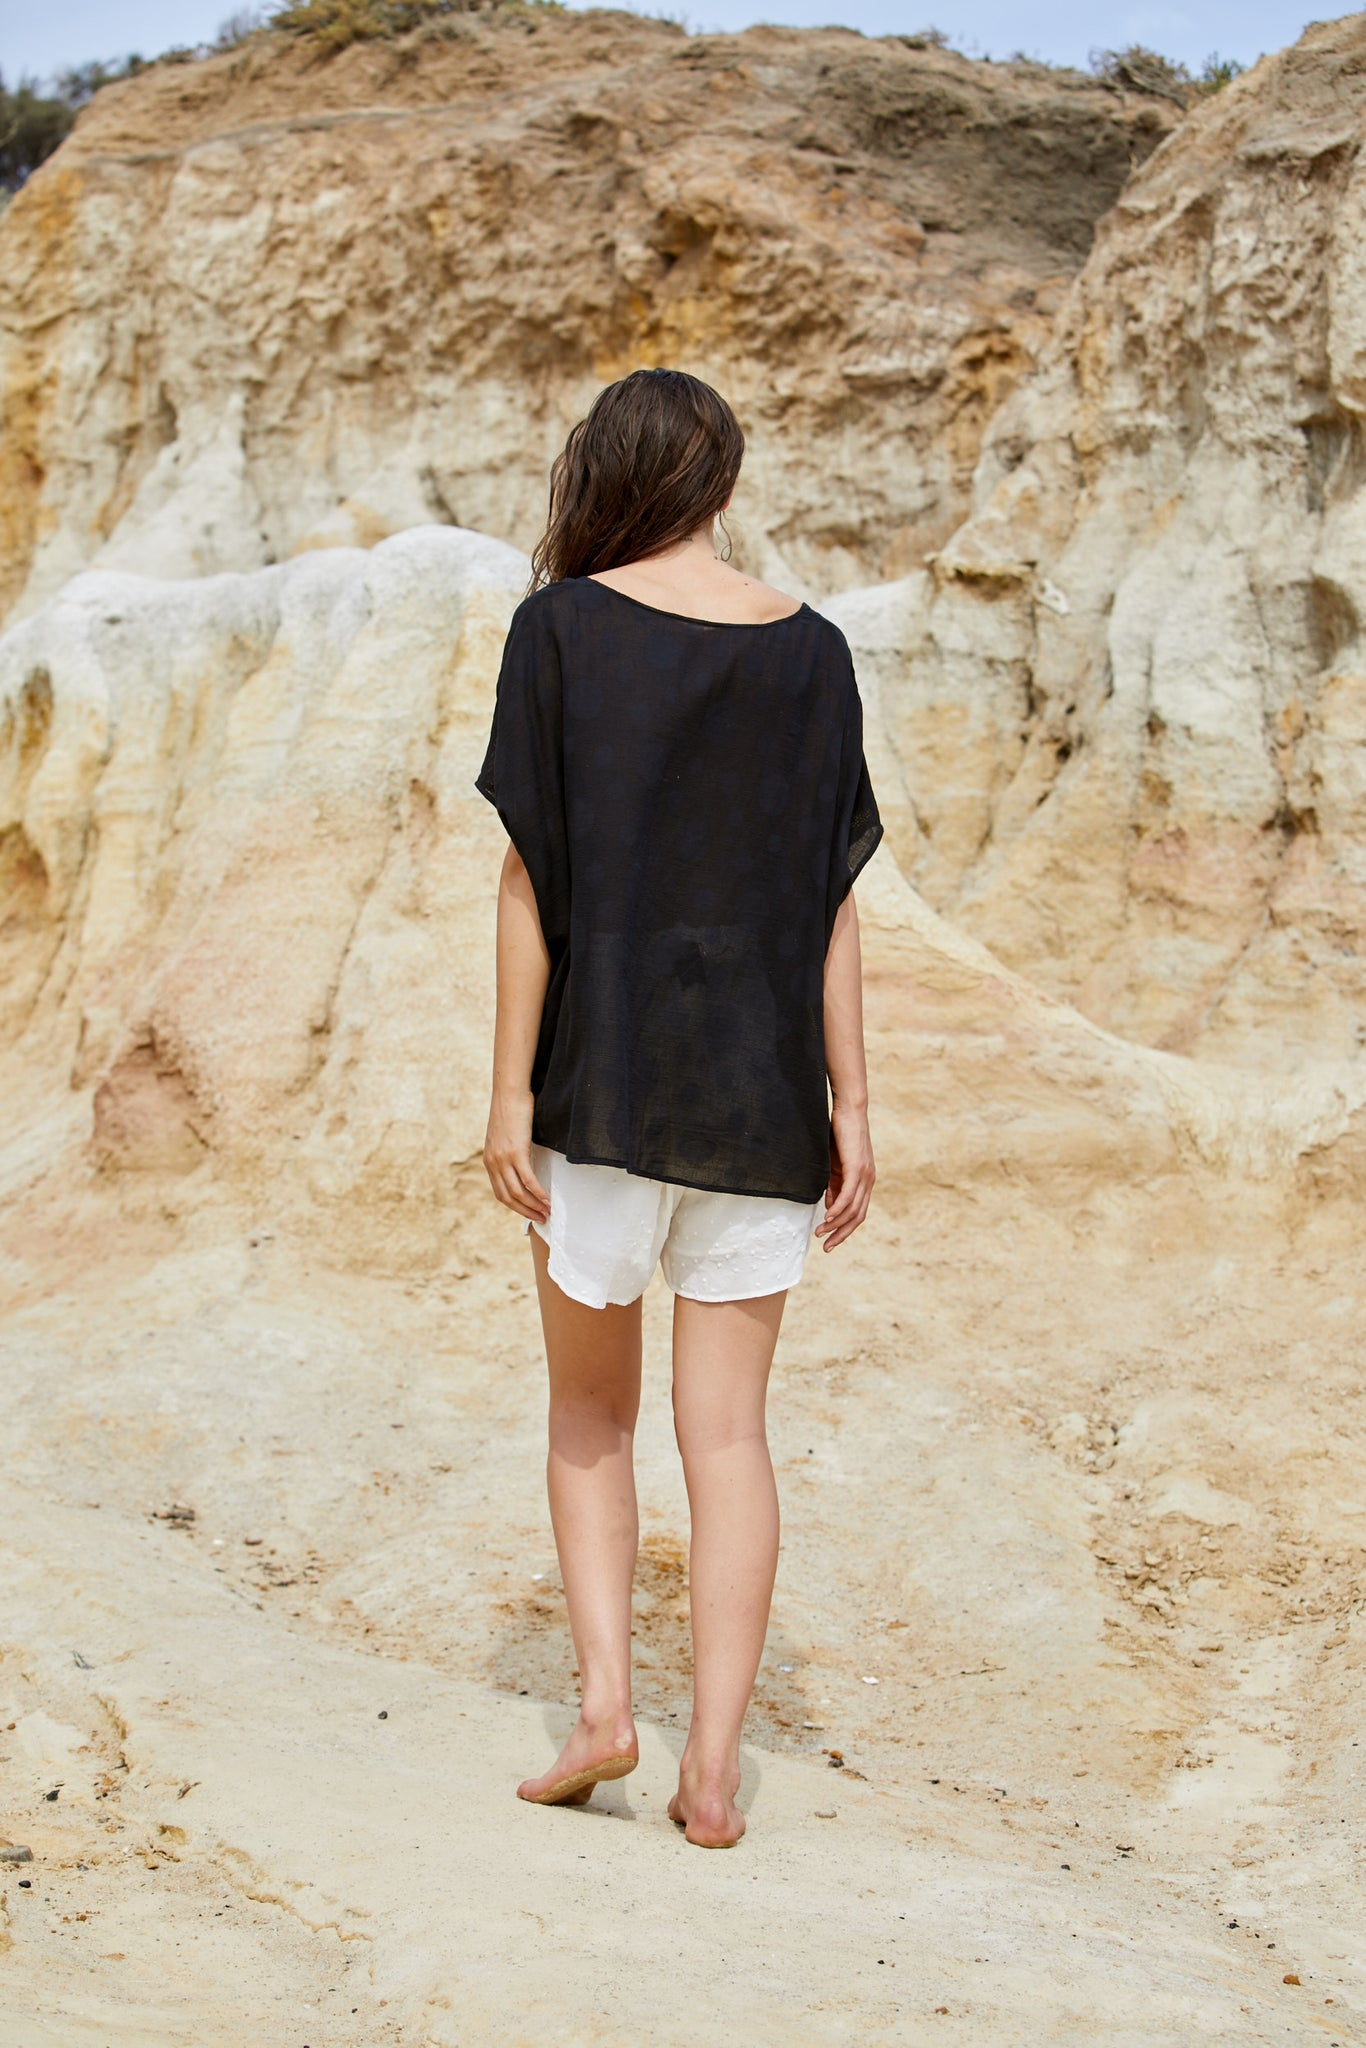 Elpis Top - Pure Cotton Jacquard